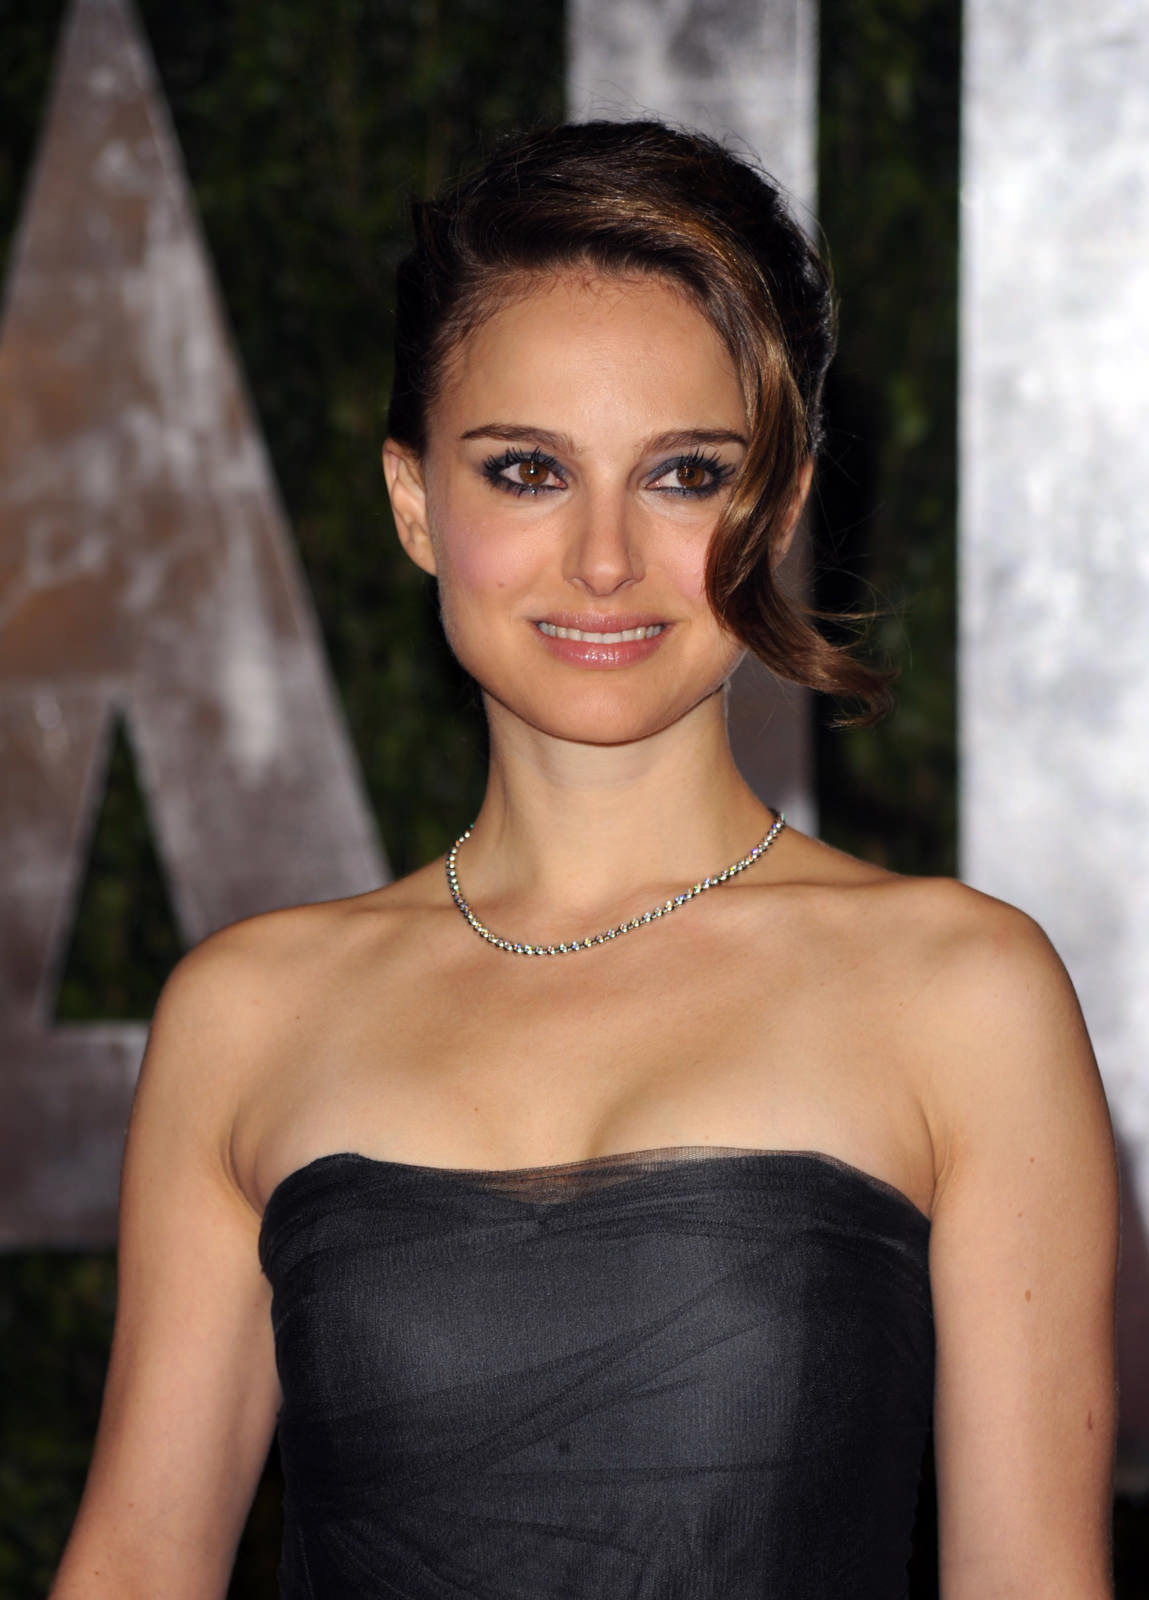 Natalie Portman Photo Gallery